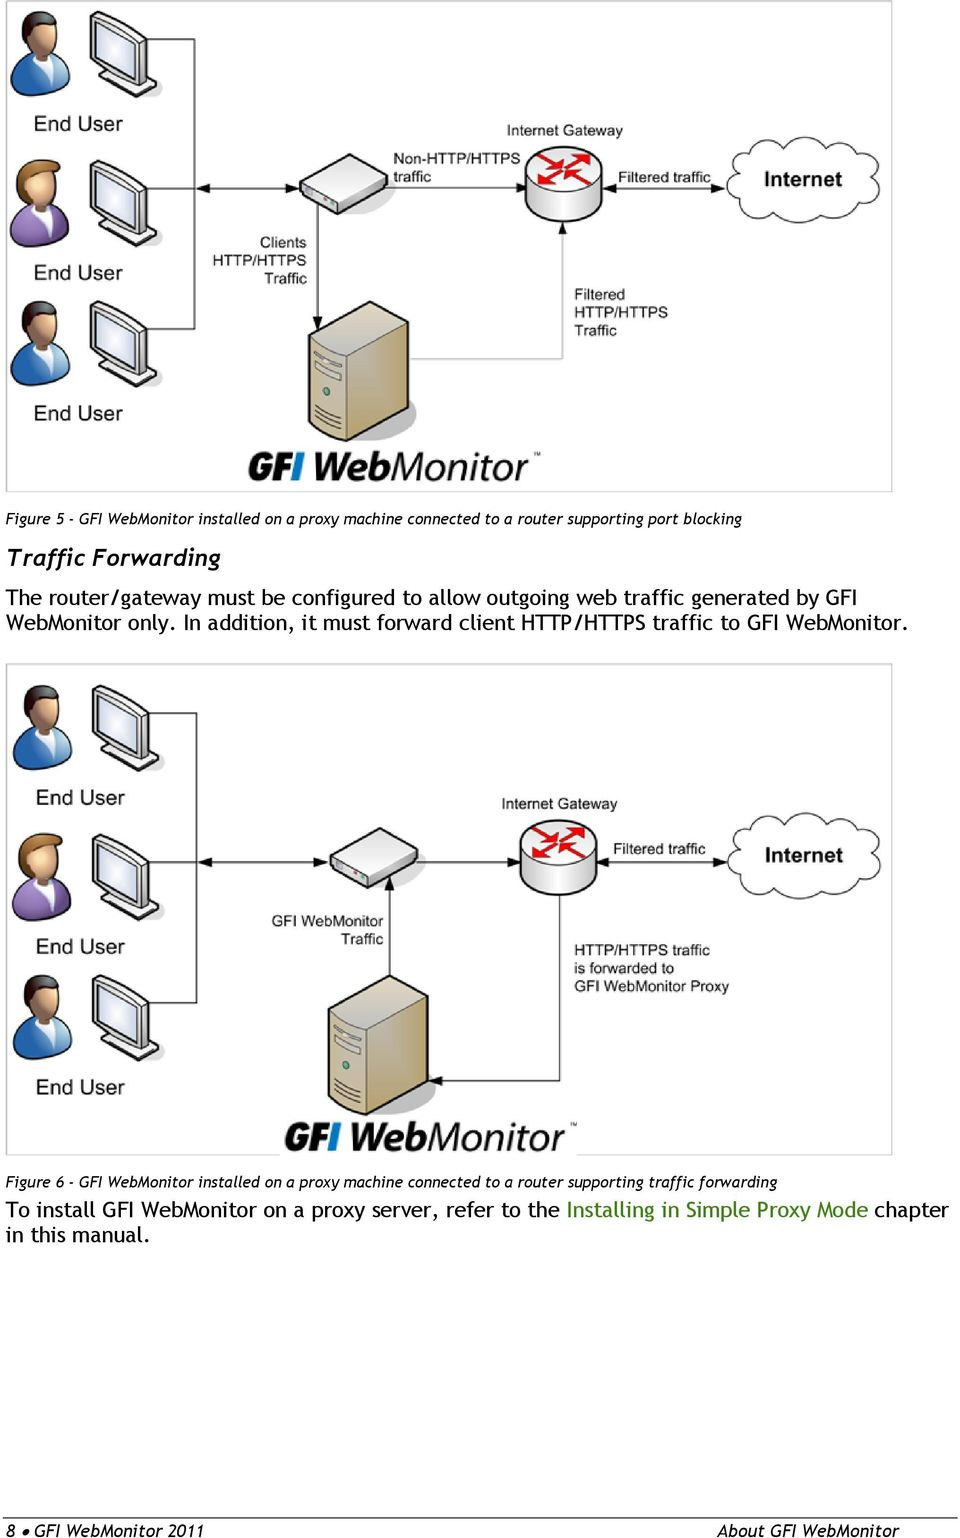 In addition, it must forward client HTTP/HTTPS traffic to GFI WebMonitor.